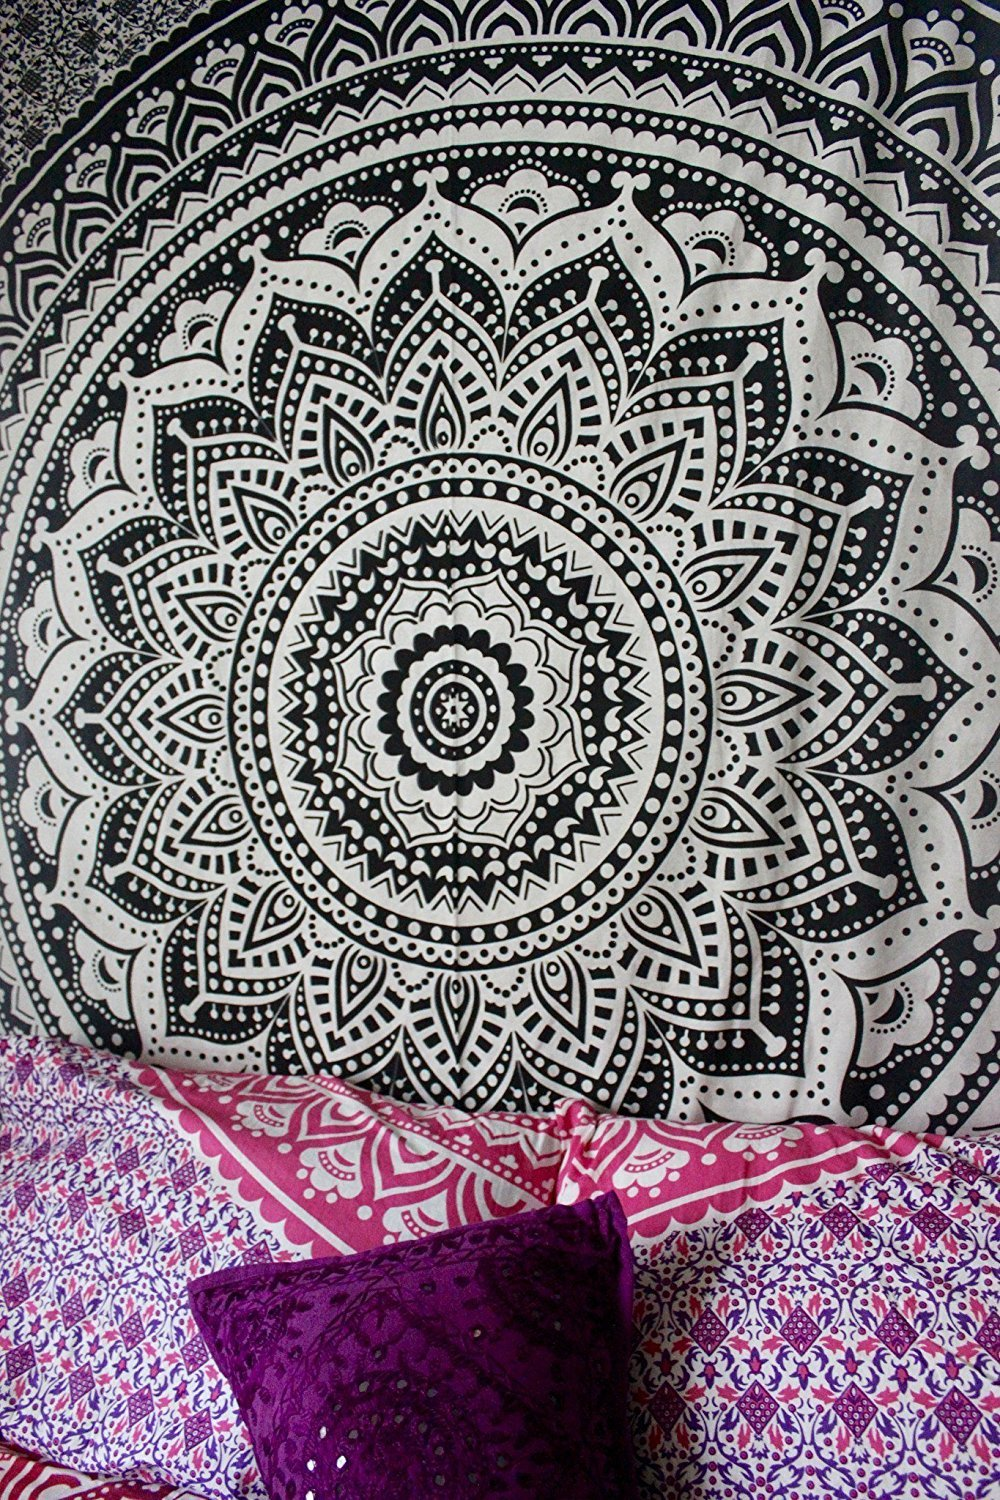 Exclusive ''Black and White Ombre Tapestry by JaipurHandloom'' Mandala Tapestry, Queen, Multi Color Indian Mandala Wall Art Hippie Wall Hanging Bohemian Bedspread by Jaipur Handloom